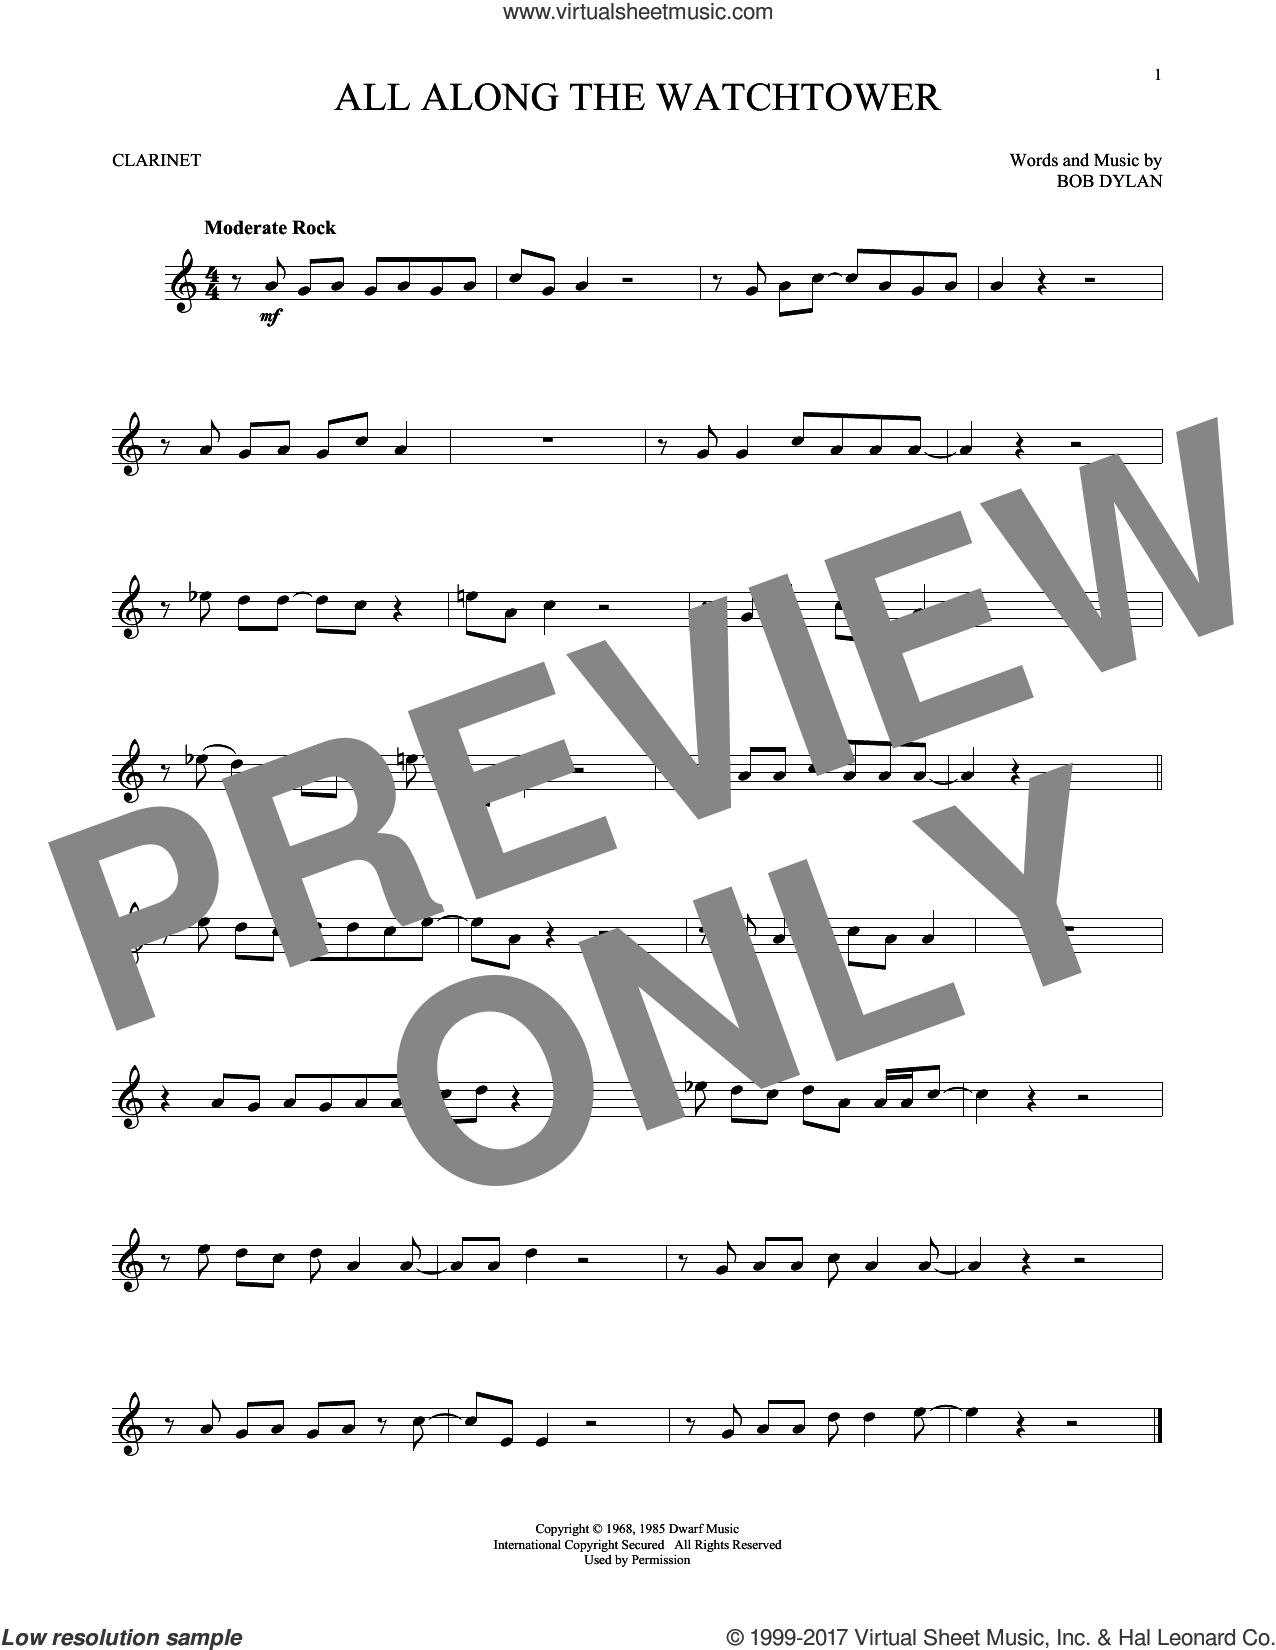 All Along The Watchtower sheet music for clarinet solo by Bob Dylan, intermediate